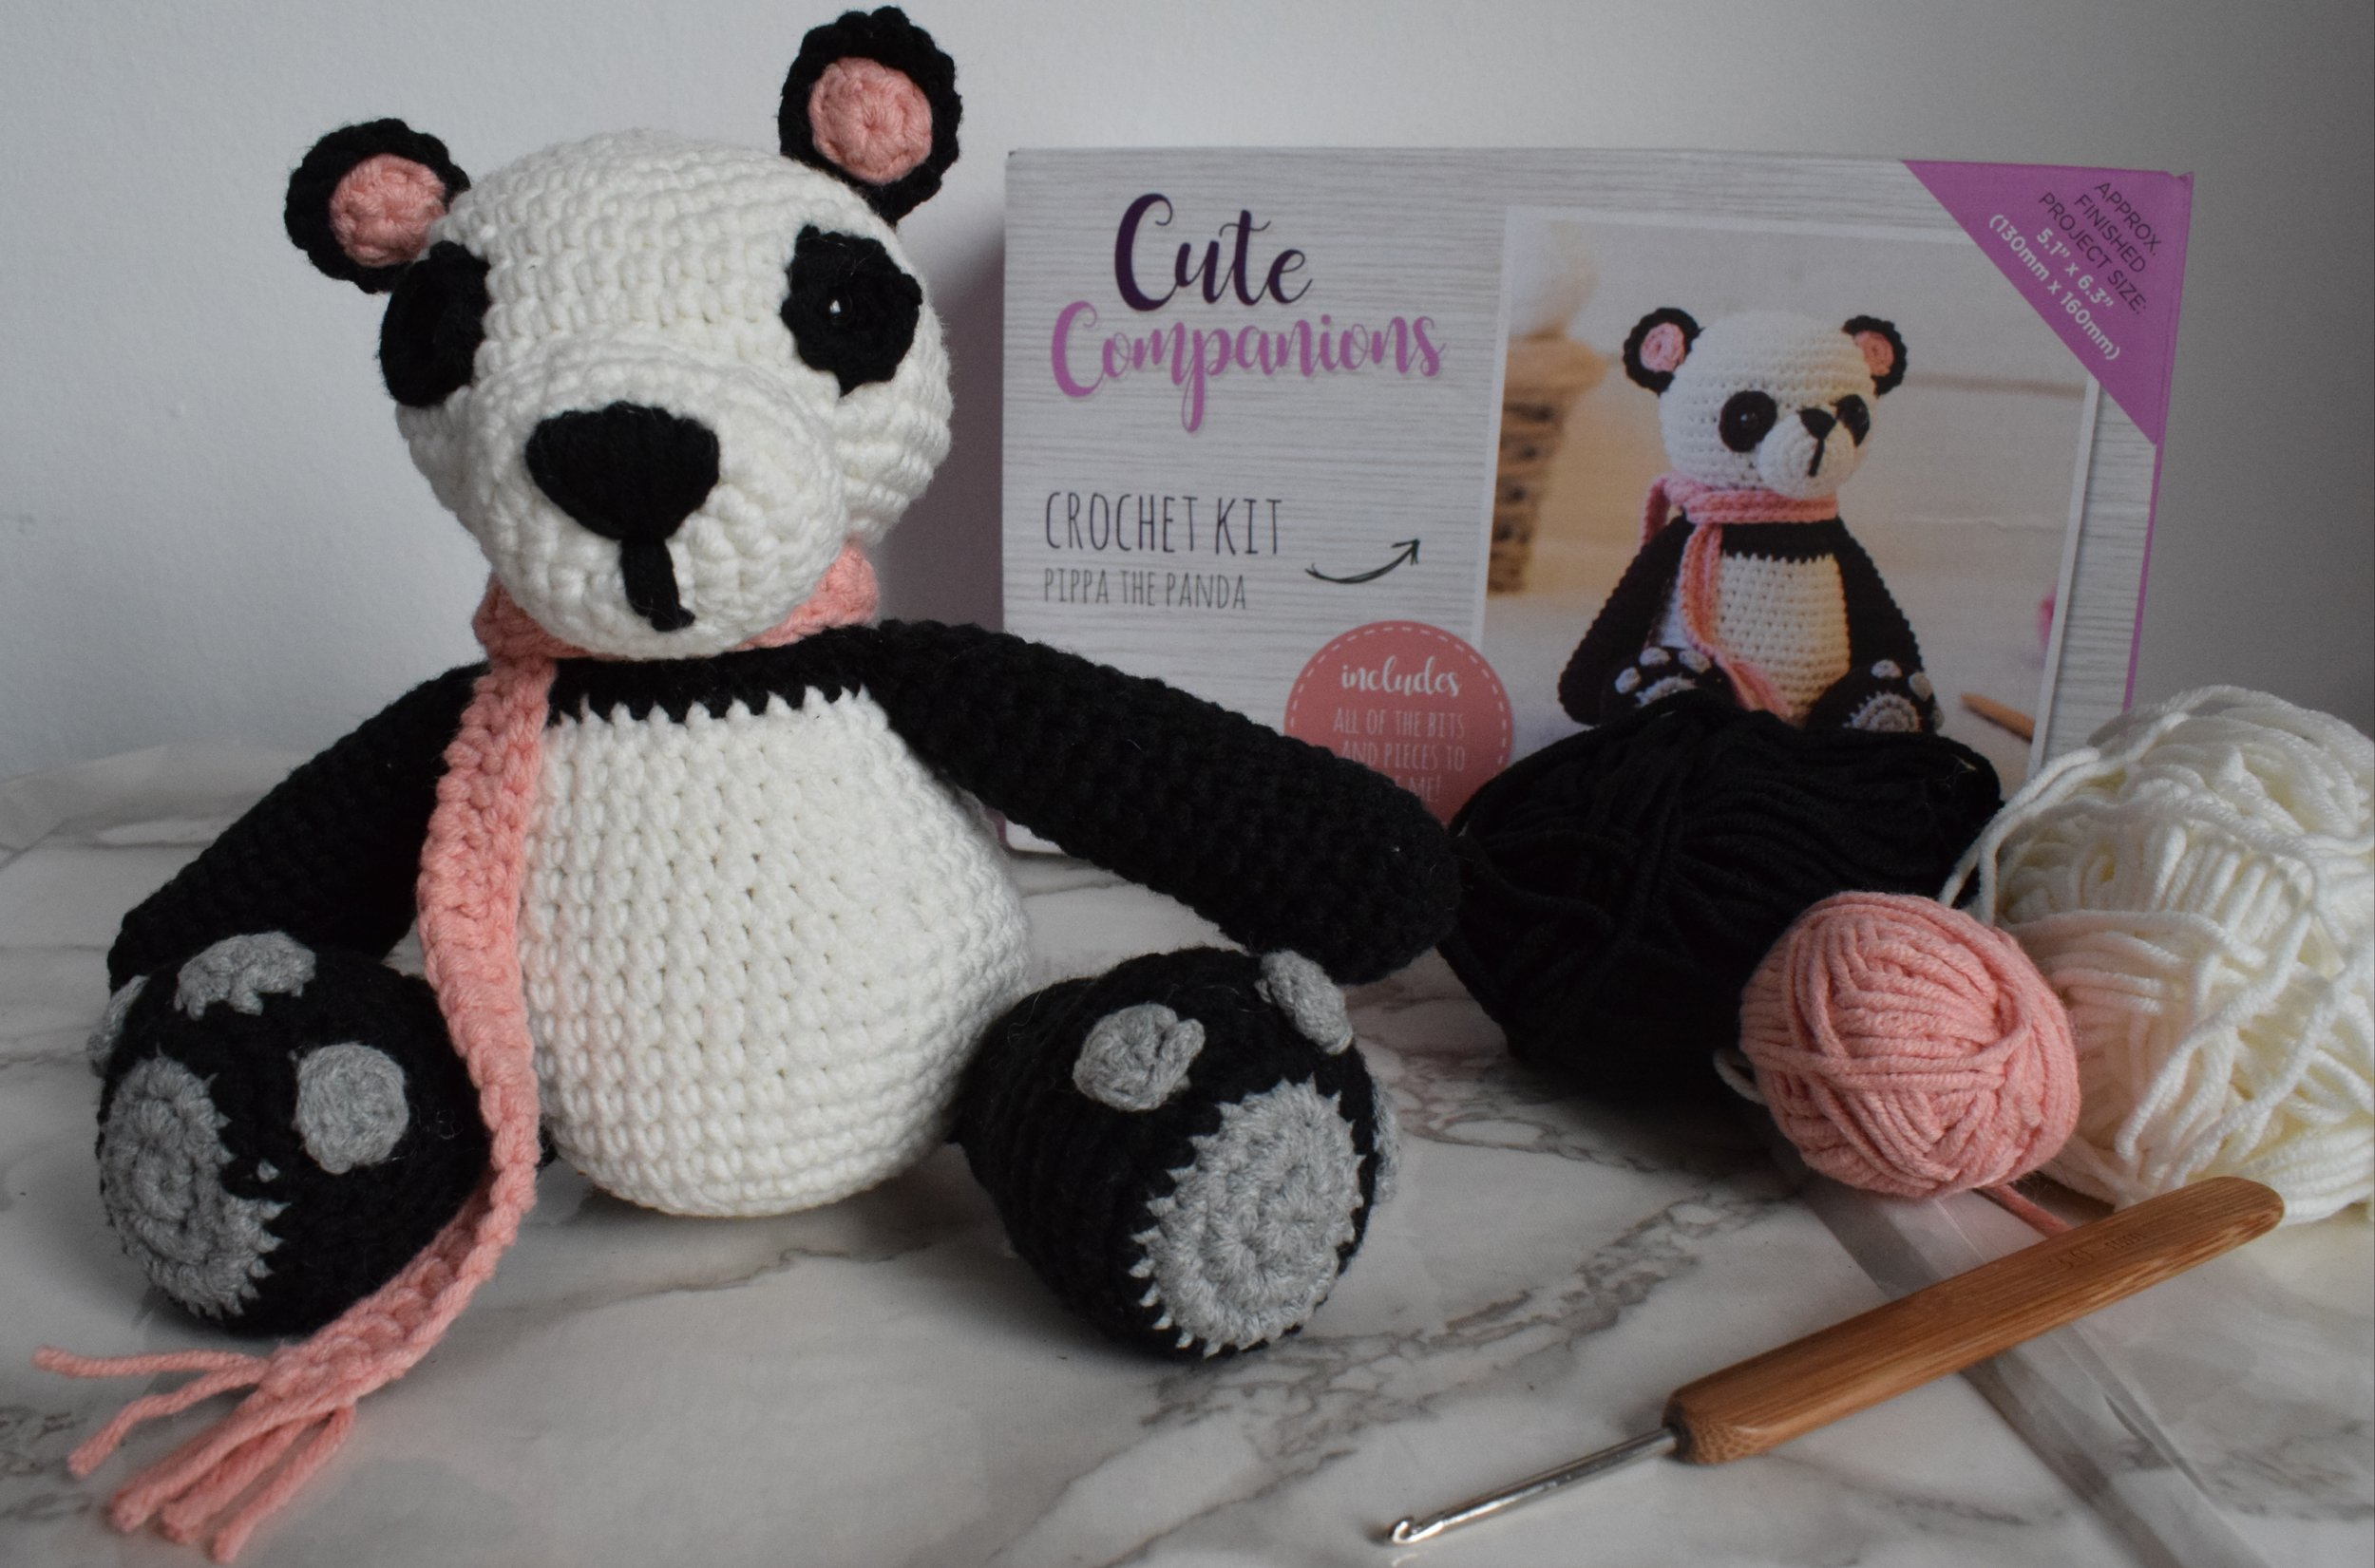 Crafter's Companion Cute Companions Crochet Kit Me Becoming Mum's Christmas Gift Ideas for Her